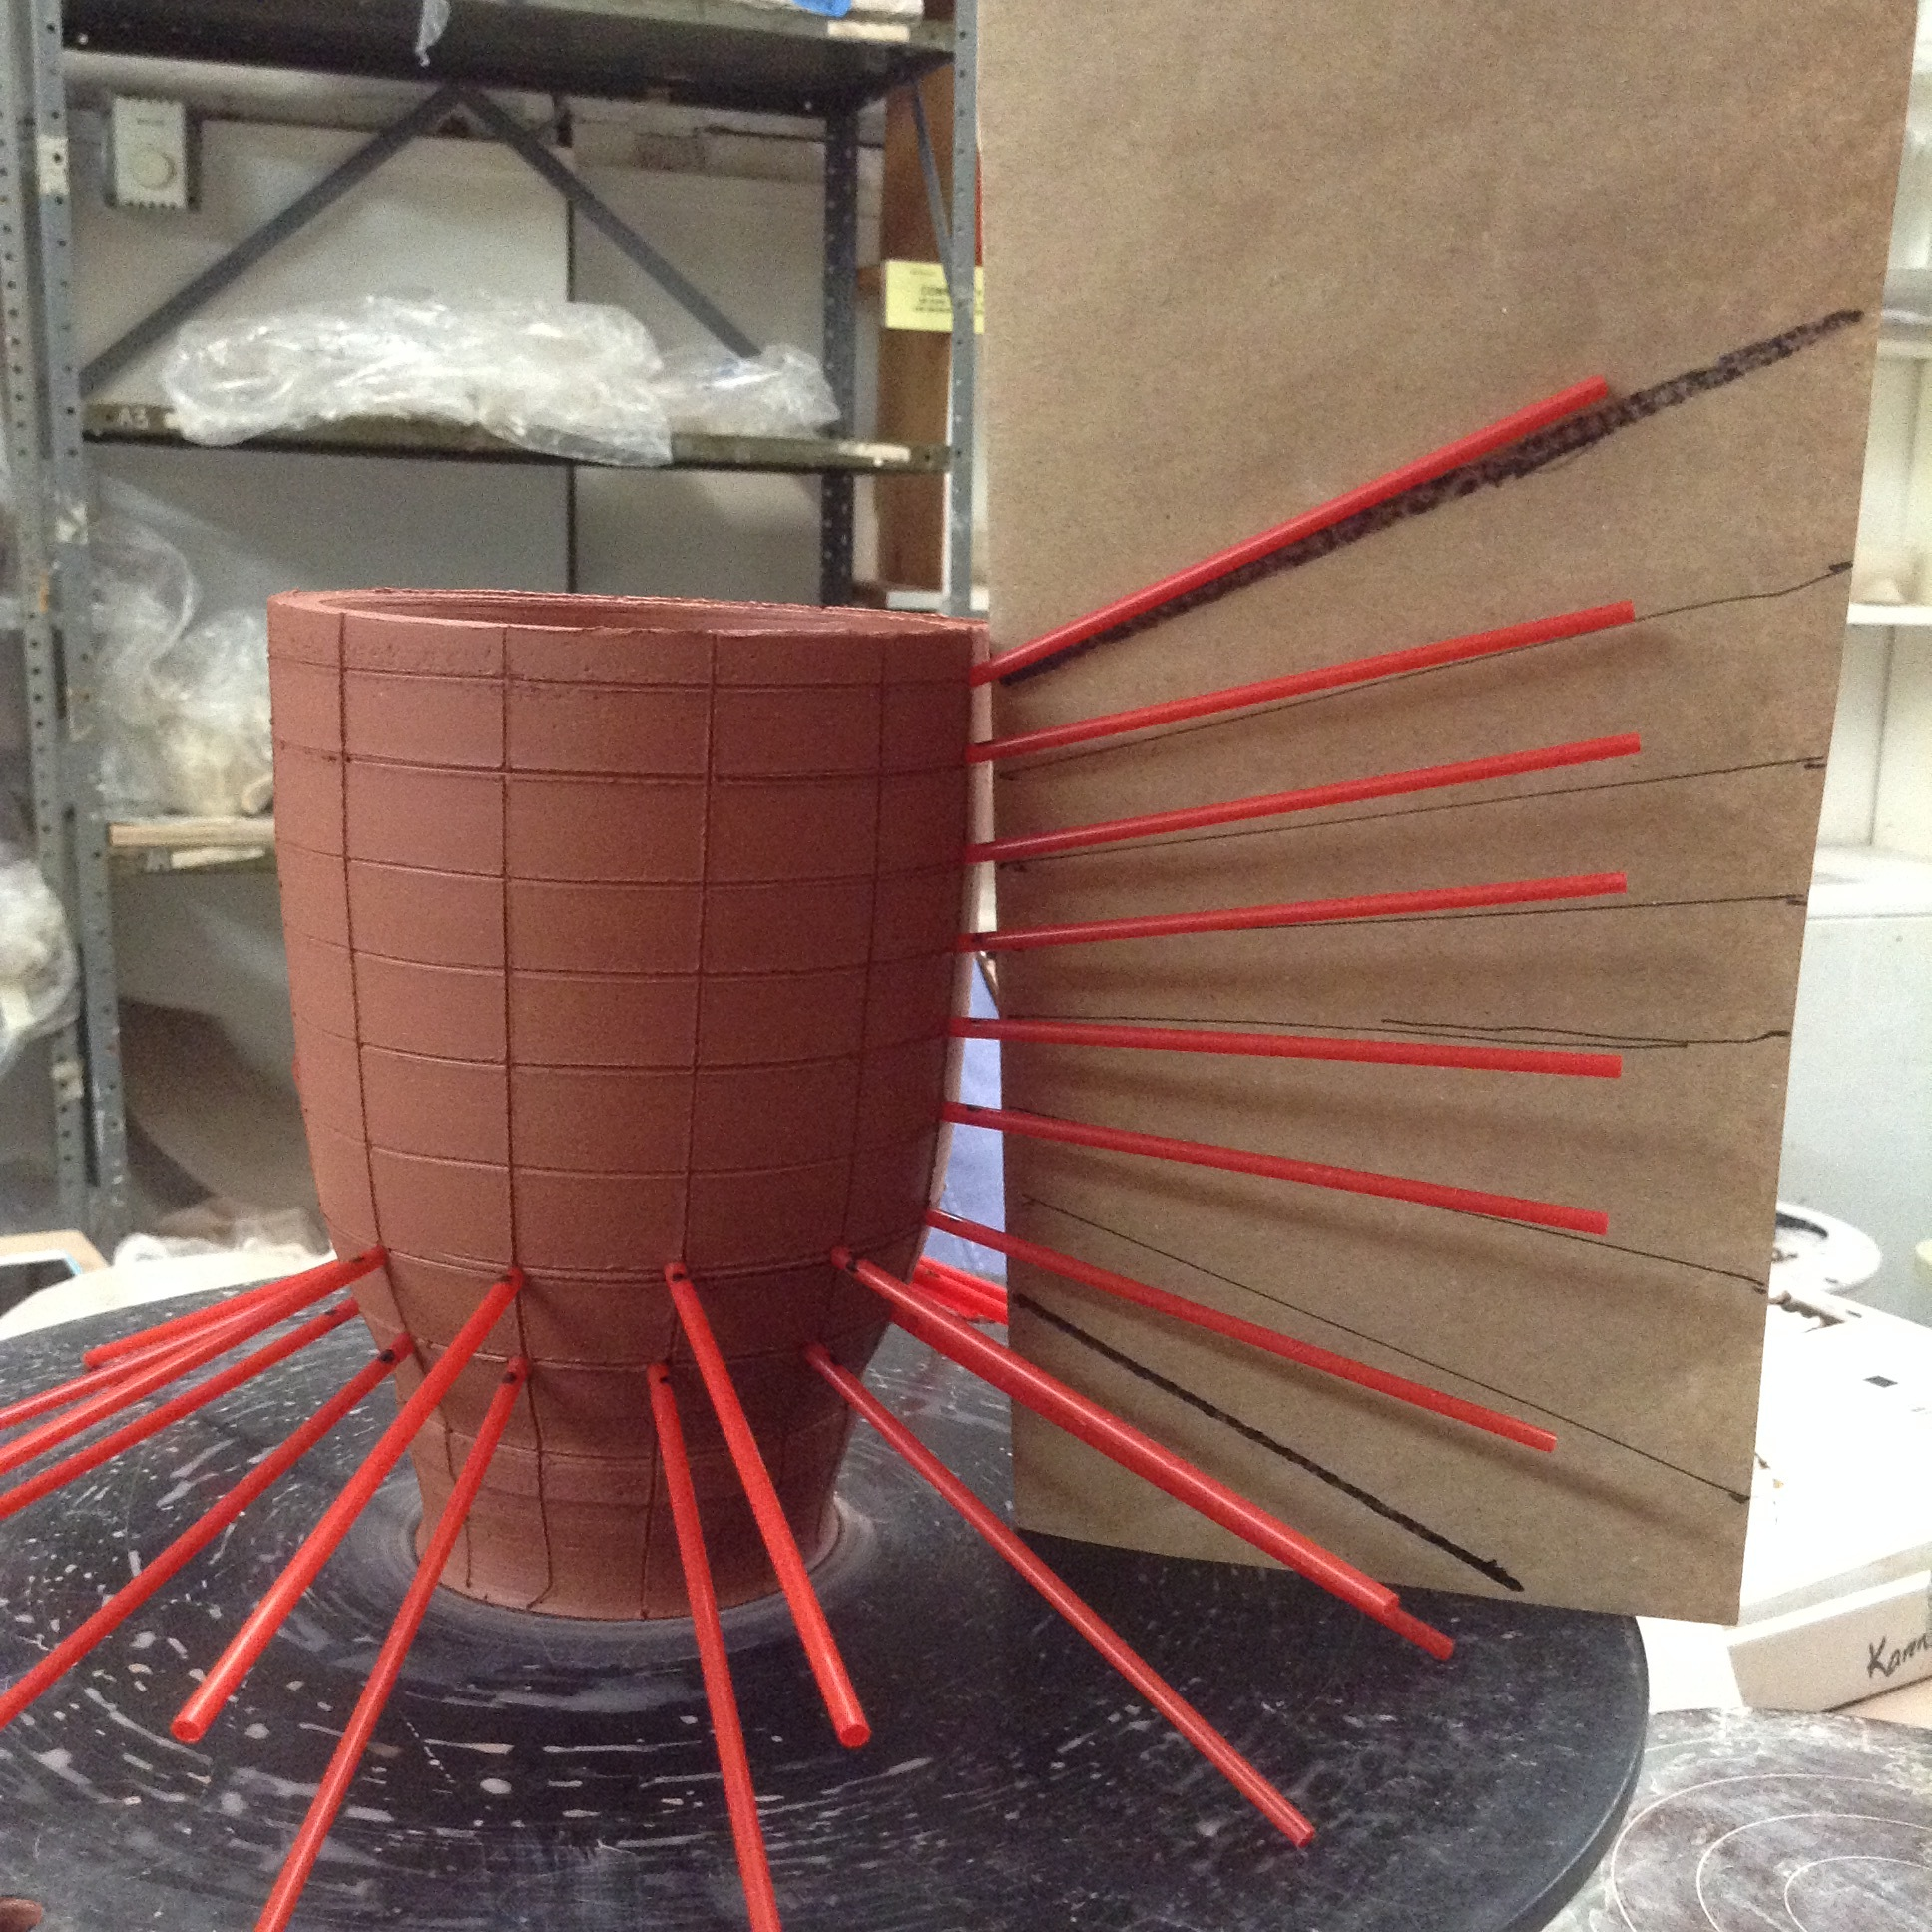 cone straw install process detail paper.JPG